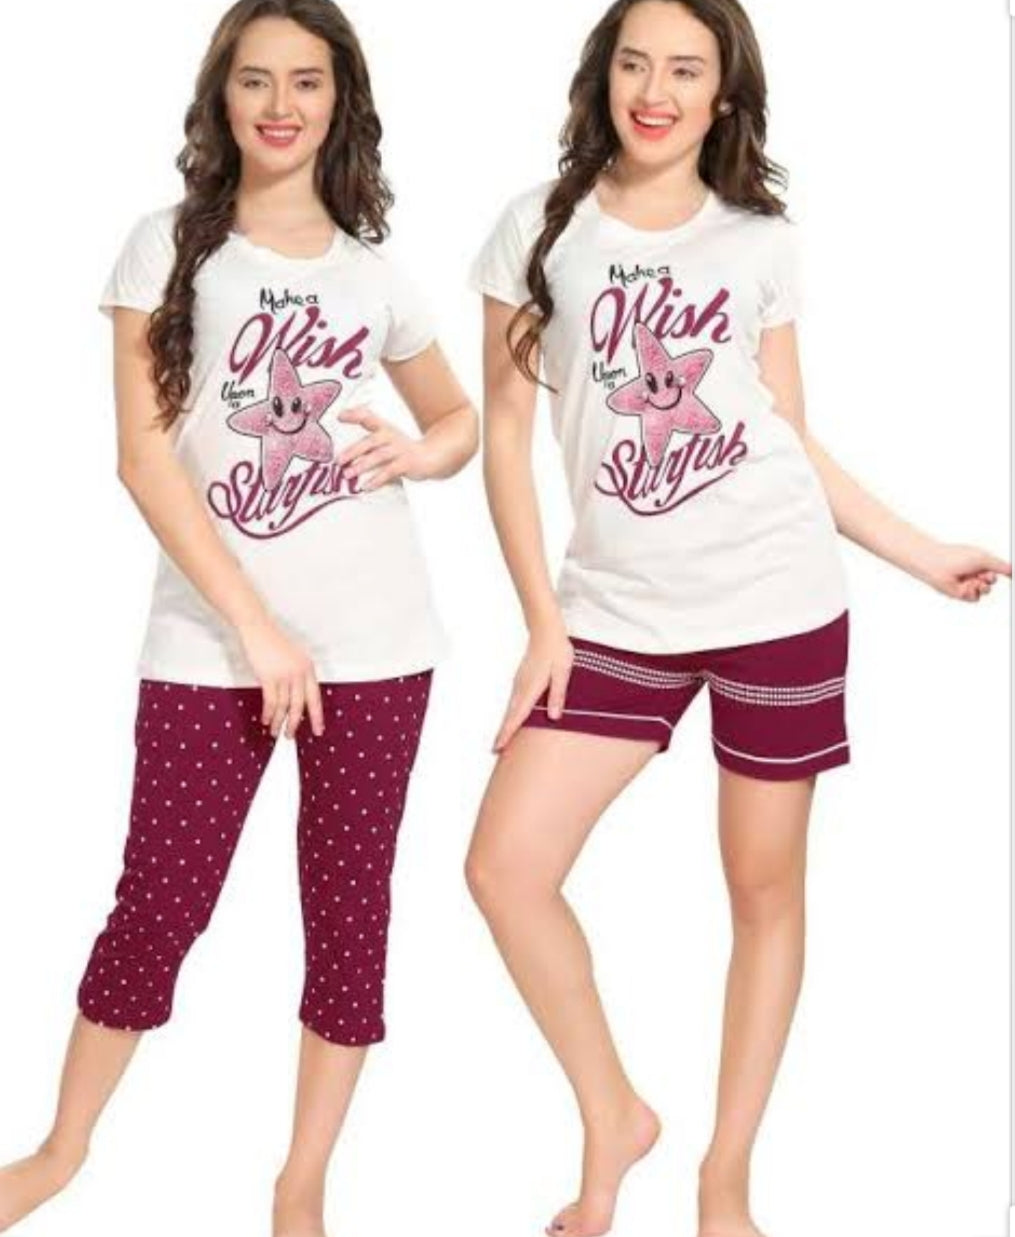 HSF Night Wear for 399/- - hsf16